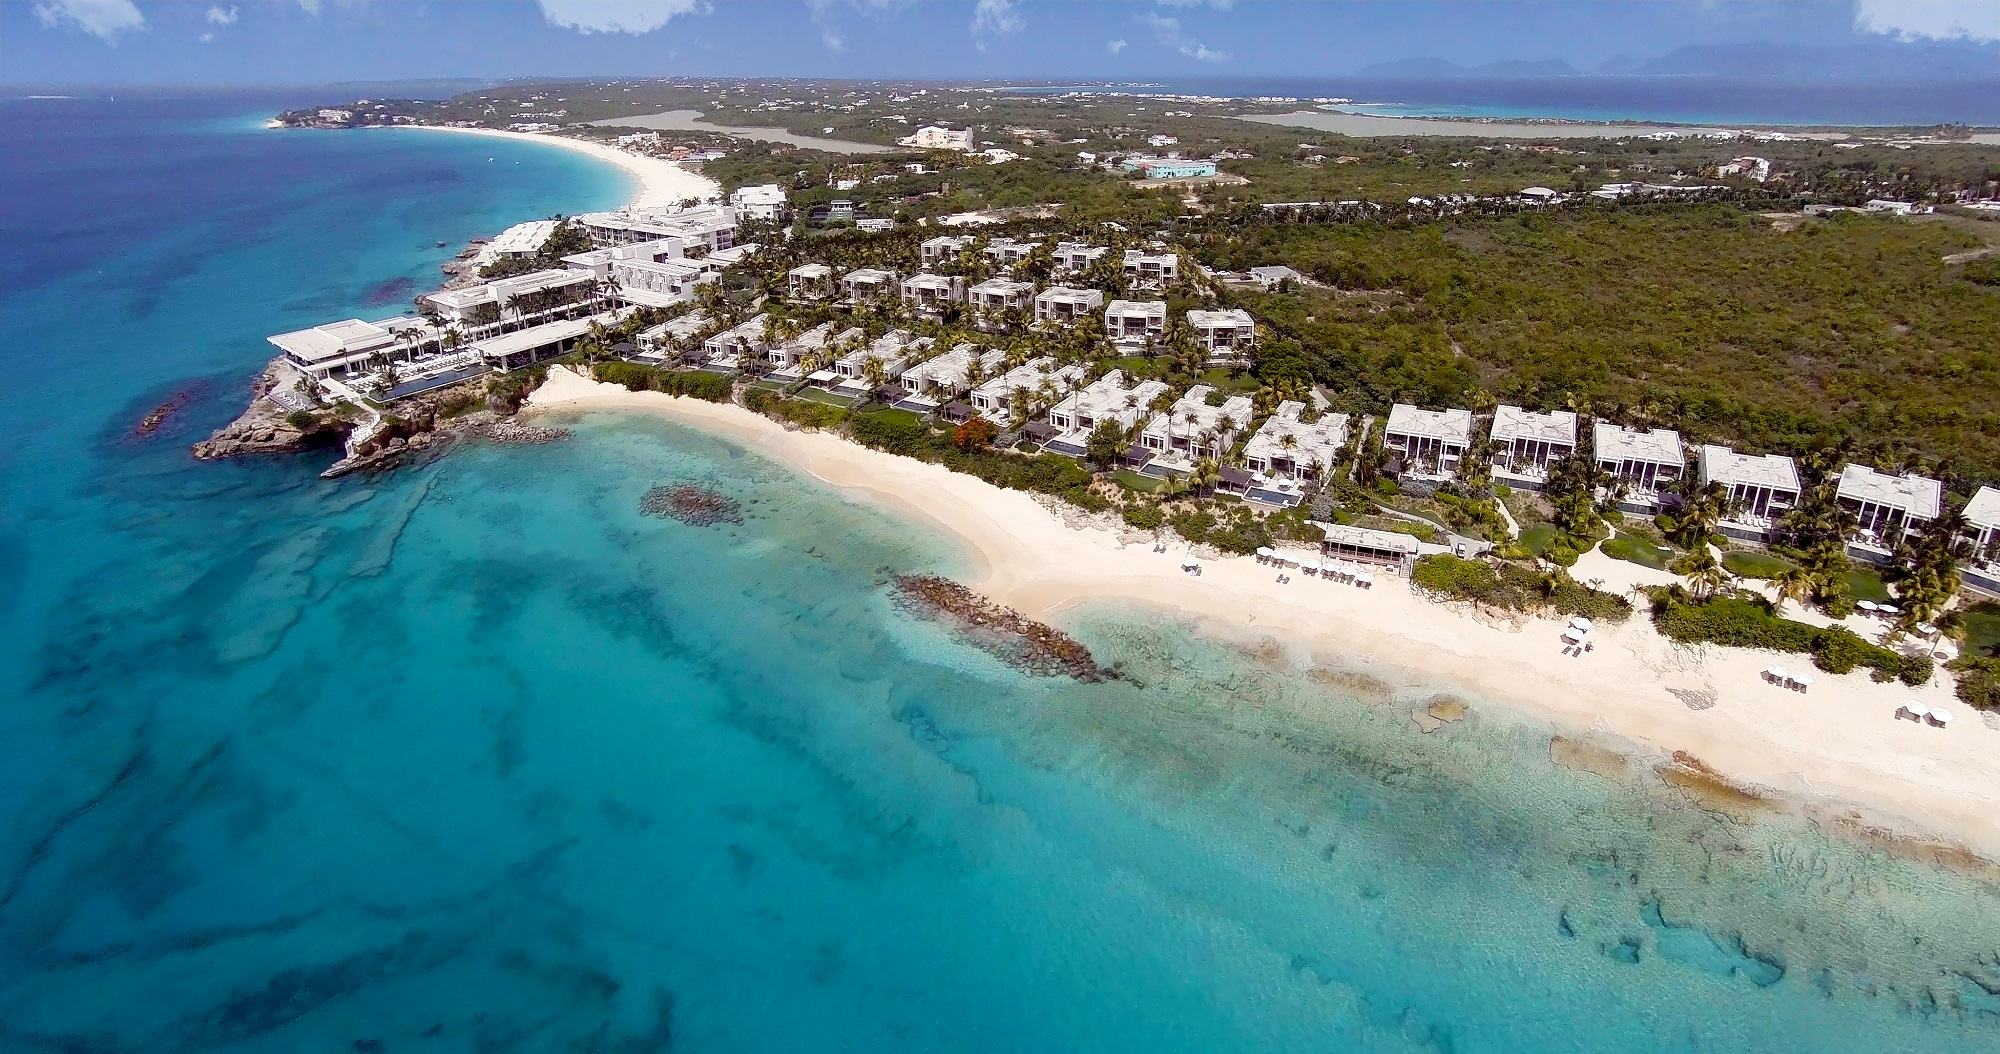 NOW ACCEPTING RESERVATIONS FOUR SEASONS RESORT AND RESIDENCES ANGUILLA TO REOPEN MARCH 23, 2018 WITH SPECIAL OFFERS FOR SPRING AND SUMMER